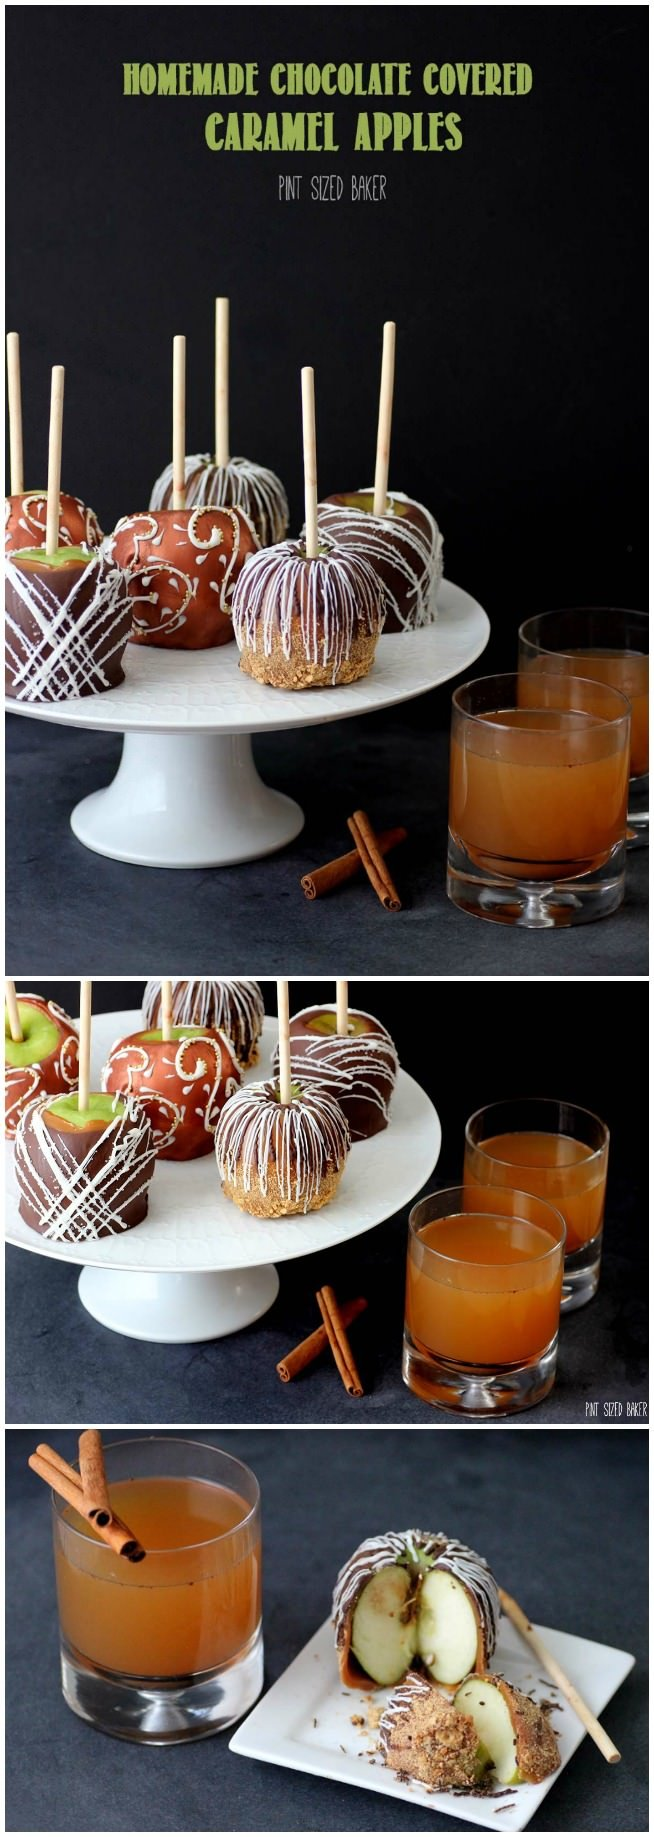 You can't beat Homemade Chocolate Covered Caramel Apples in the fall! All the best tips to make them are in this post!